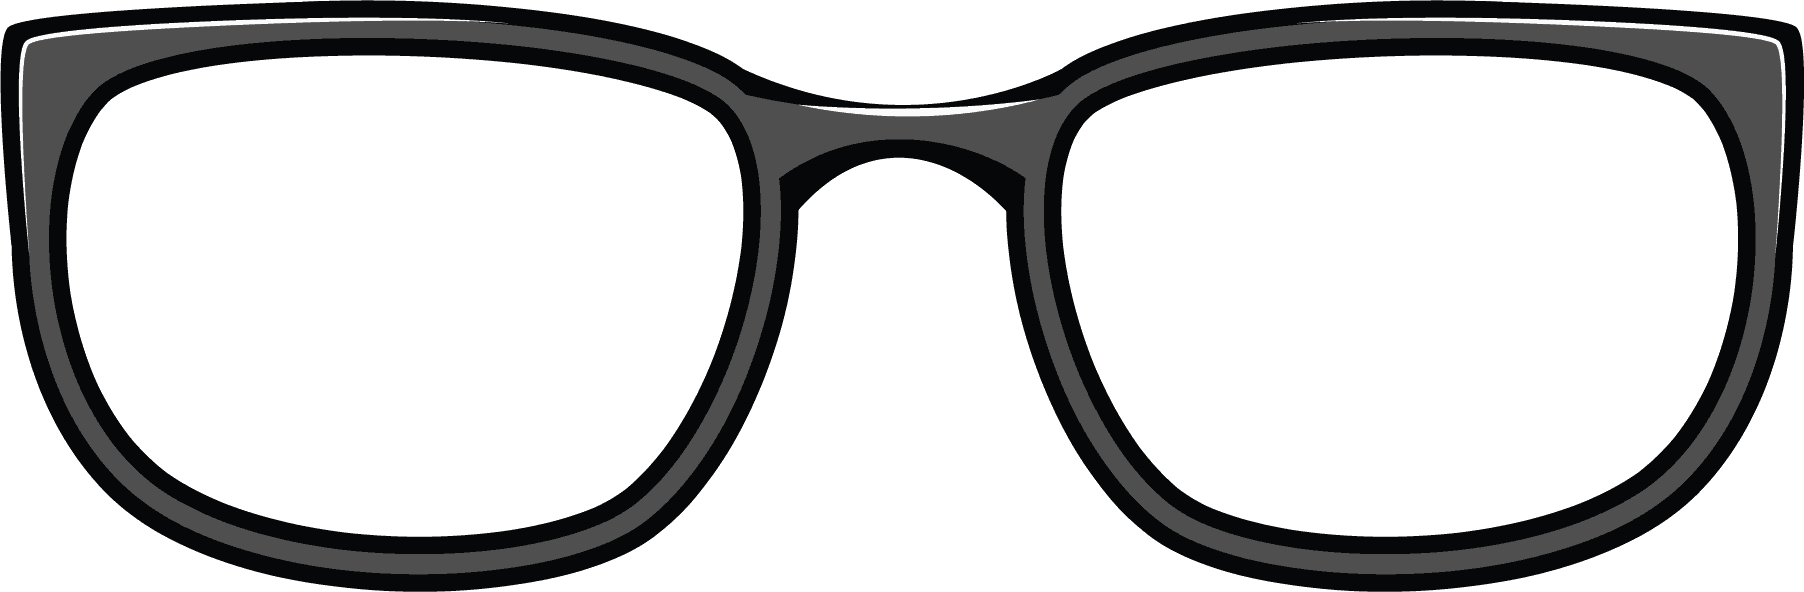 collection of glasses. Moustache clipart chasma